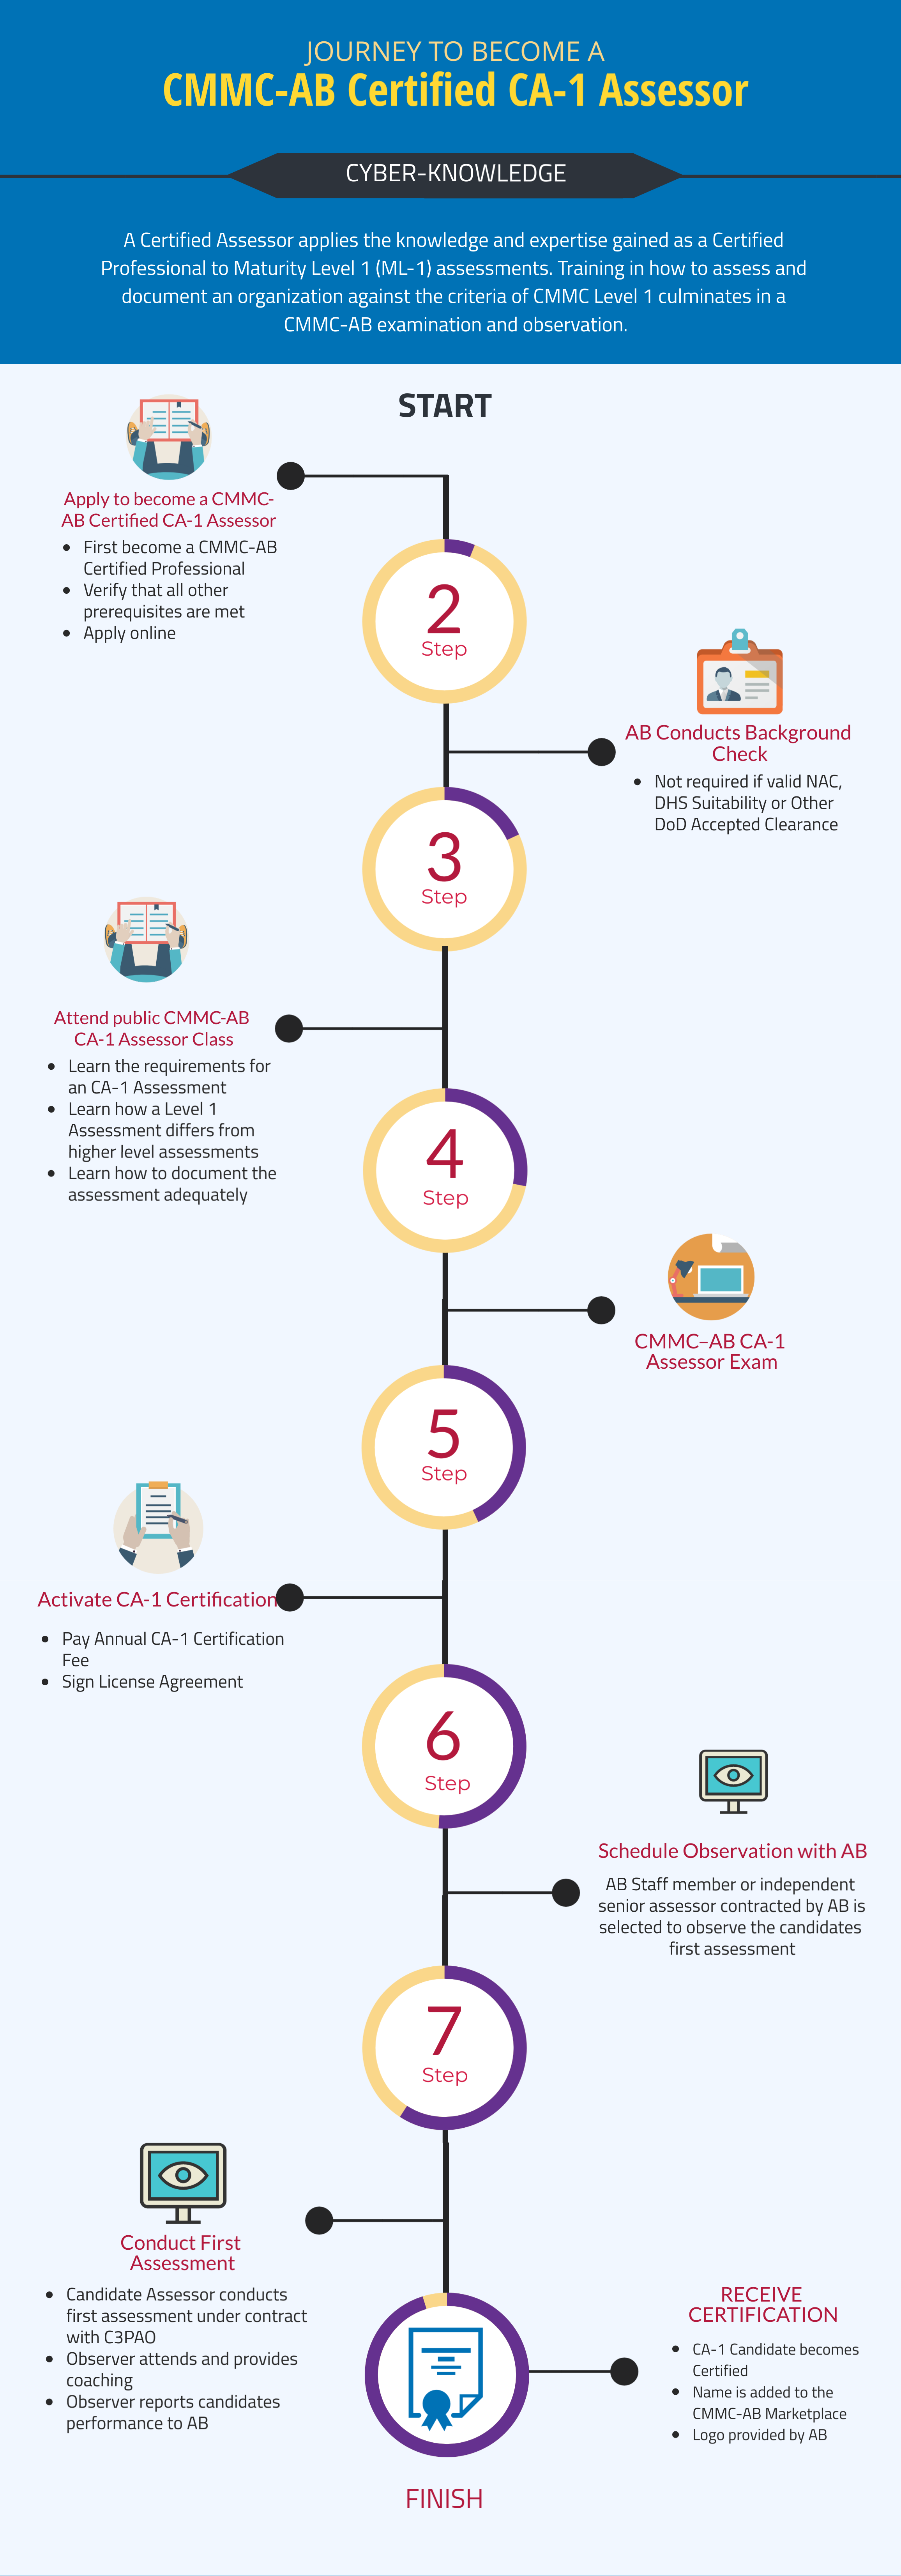 Infographic showing the journey to become a CA-1 Assessor